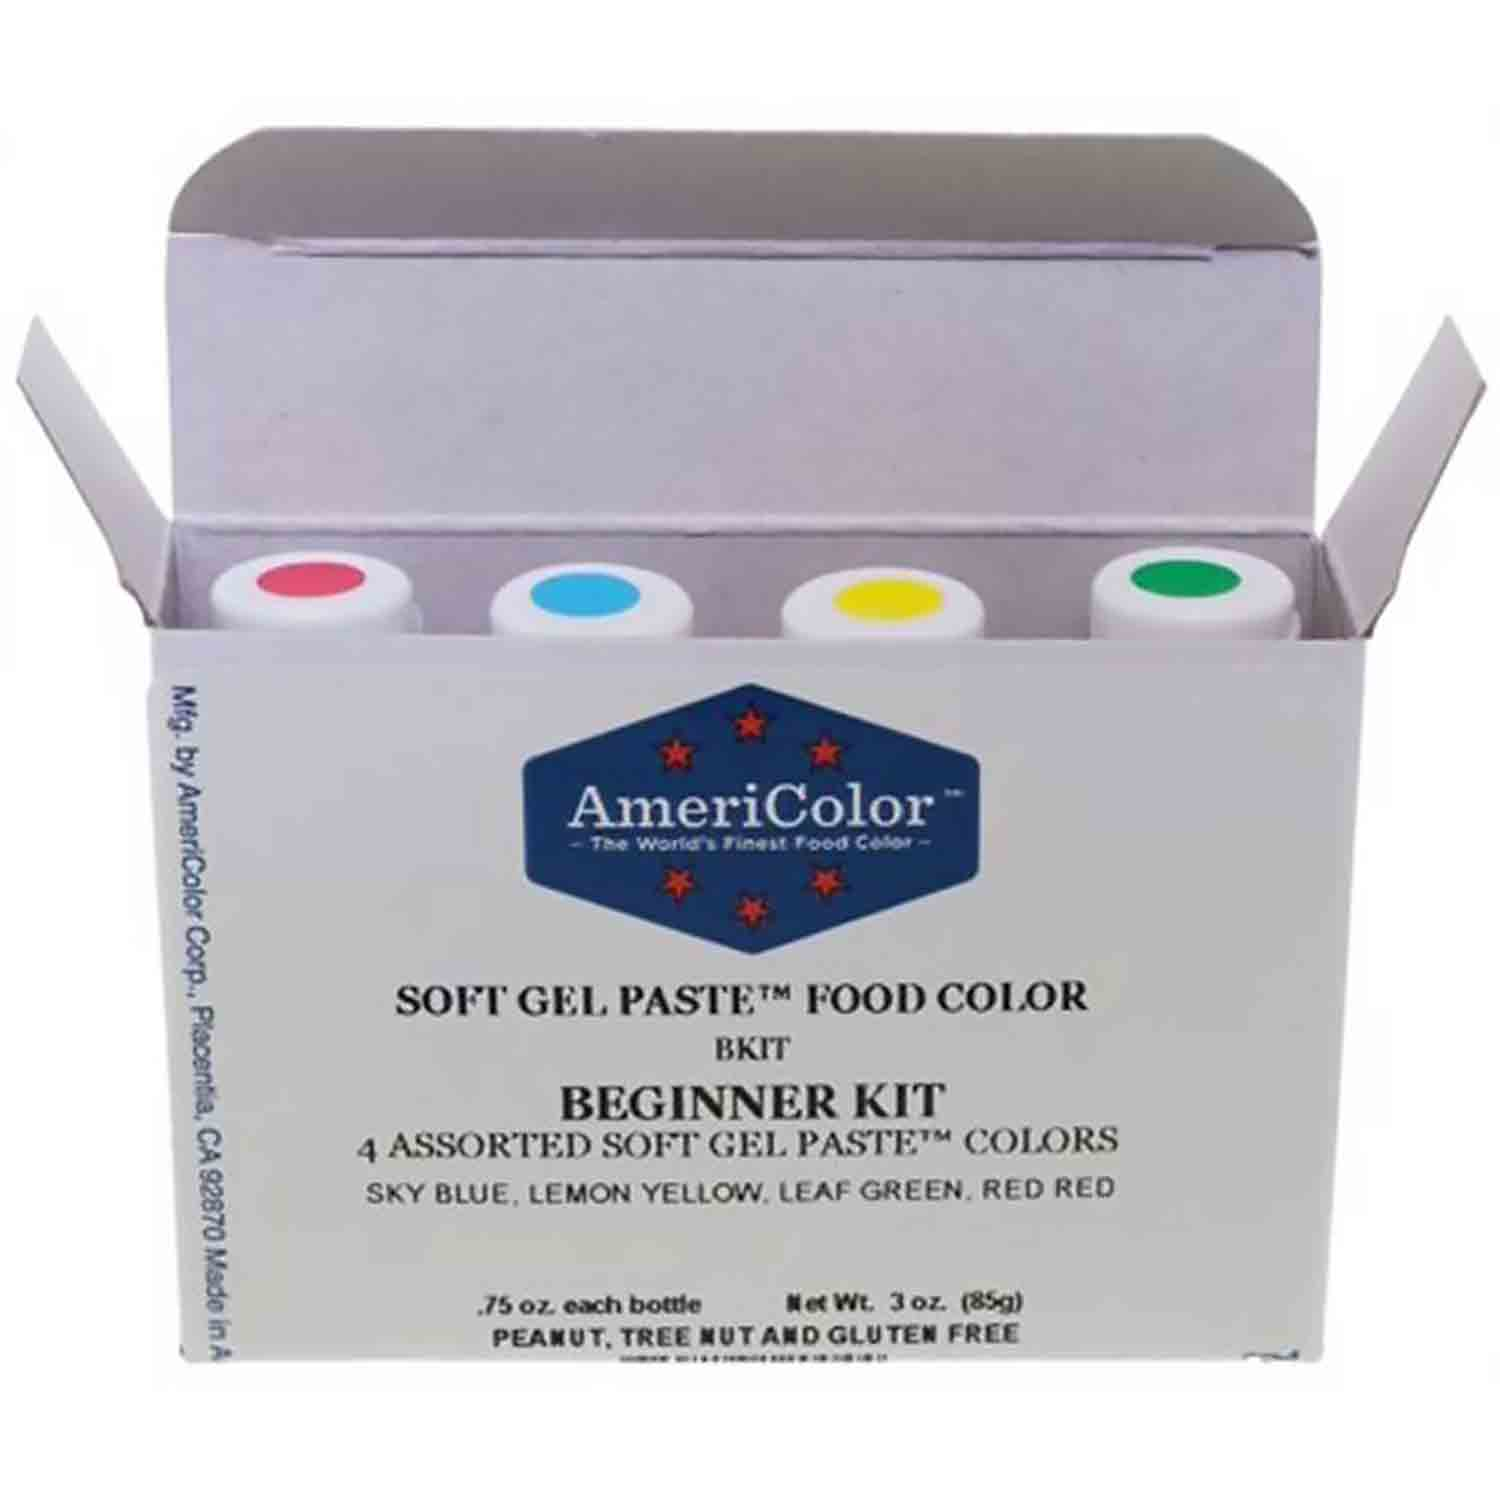 Beginner Soft Gel Paste™ Food Color Kit